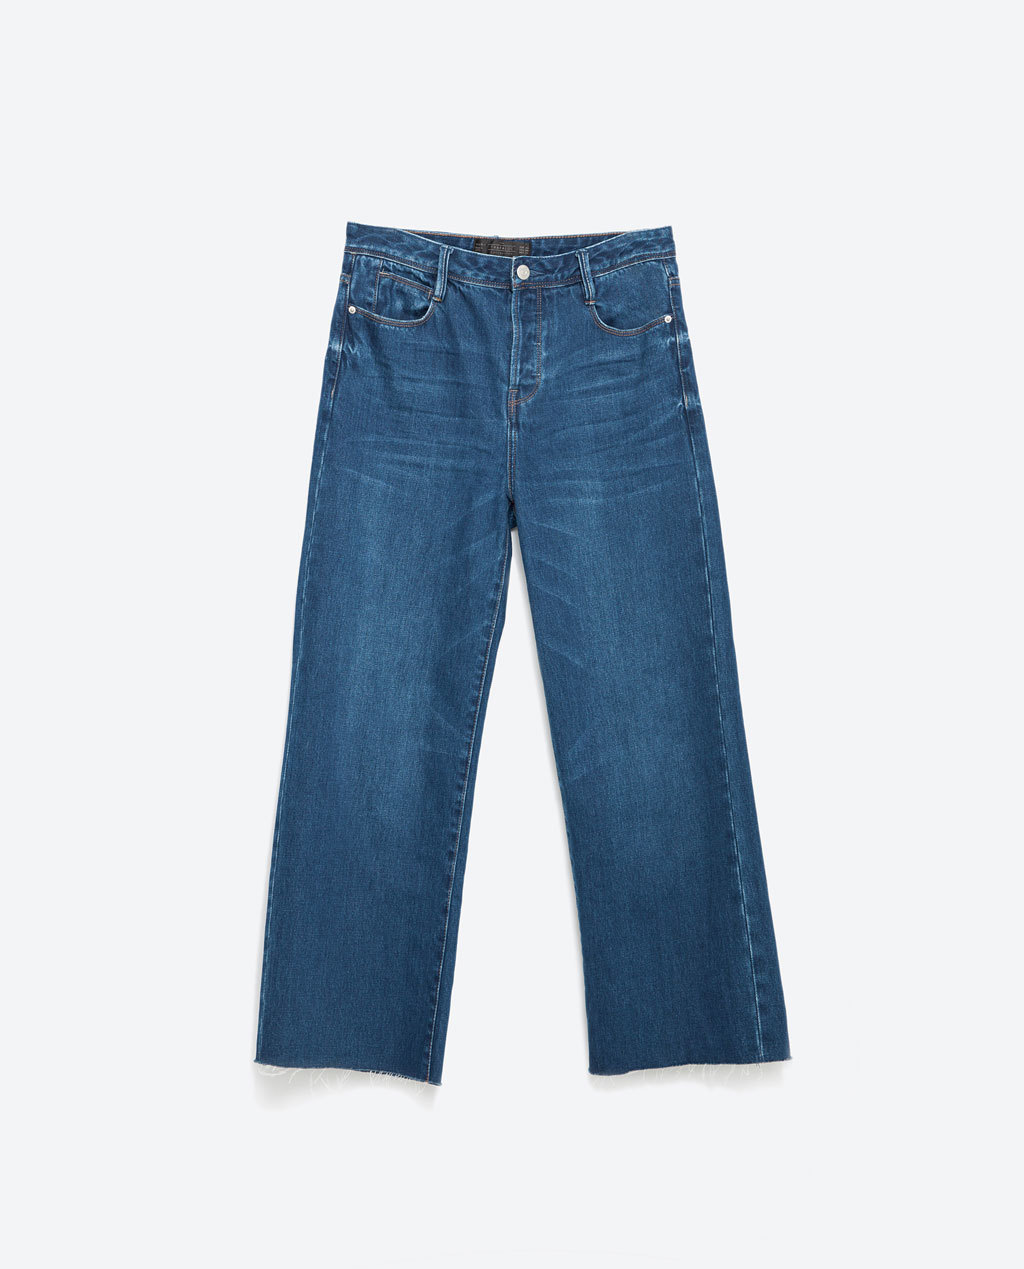 Cropped Wide Leg Trousers - pattern: plain; pocket detail: traditional 5 pocket; waist: mid/regular rise; style: wide leg; predominant colour: denim; occasions: casual, creative work; length: calf length; fibres: cotton - 100%; texture group: denim; pattern type: fabric; season: a/w 2015; wardrobe: basic